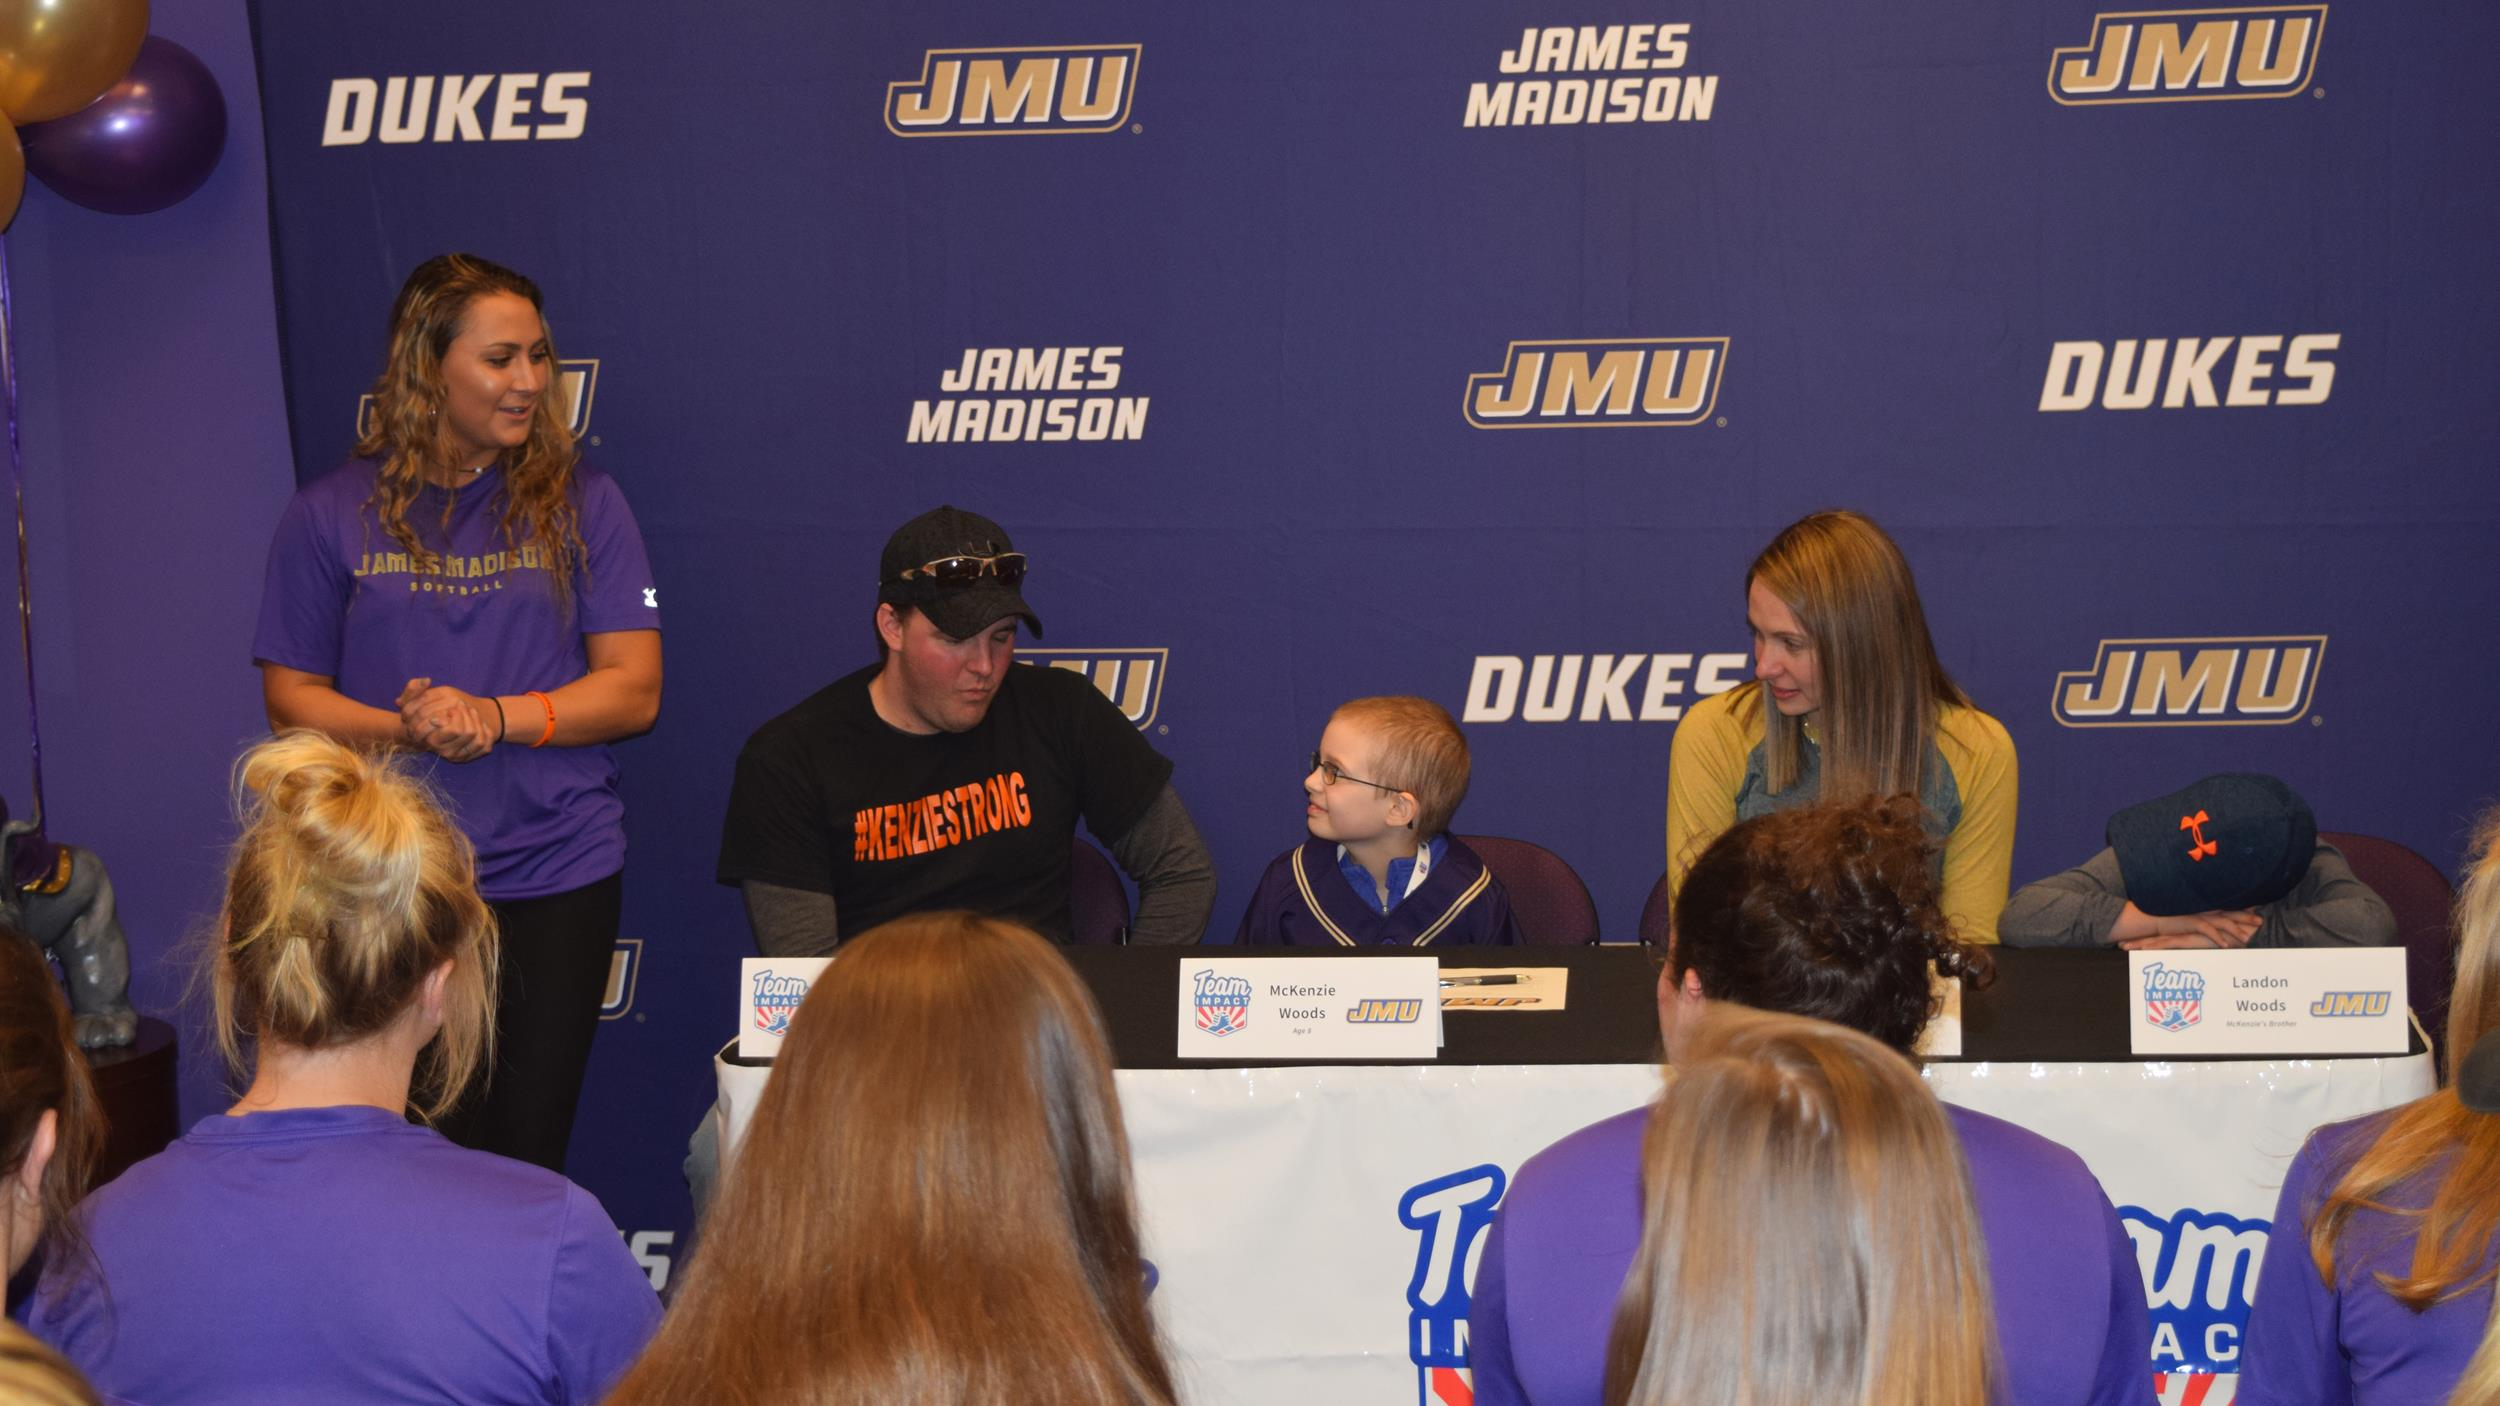 Softball, Community Relations: Softball Partners with Team IMPACT to Sign McKenzie Woods to National Letter of Intent)